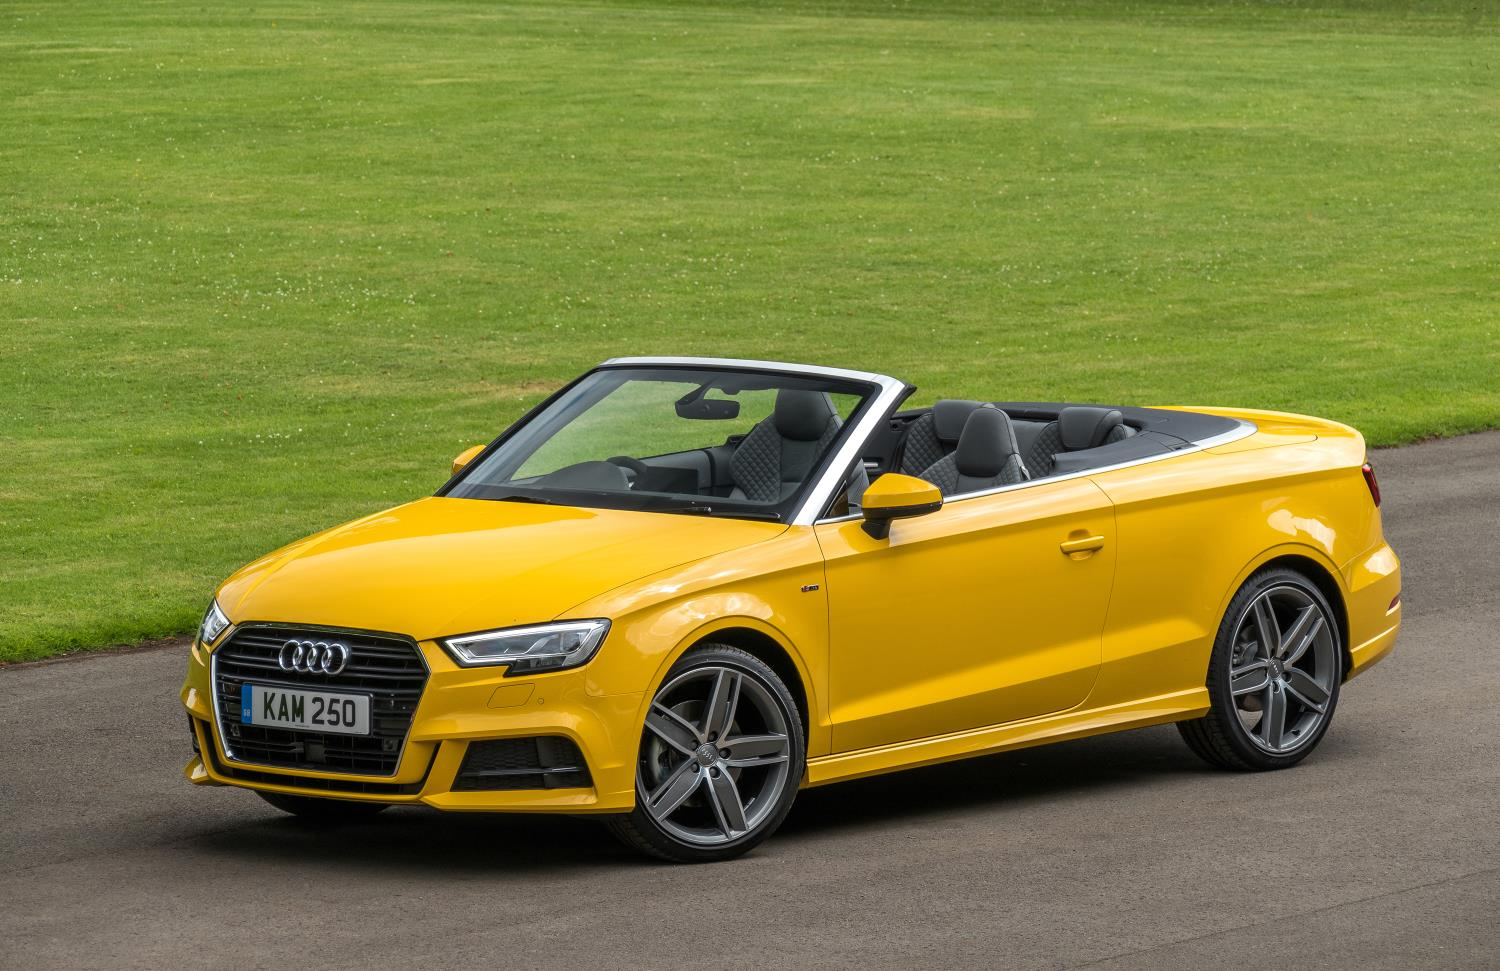 YELLOW USED AUDI A3 CABRIOLET WITH THE ROOF DOWN